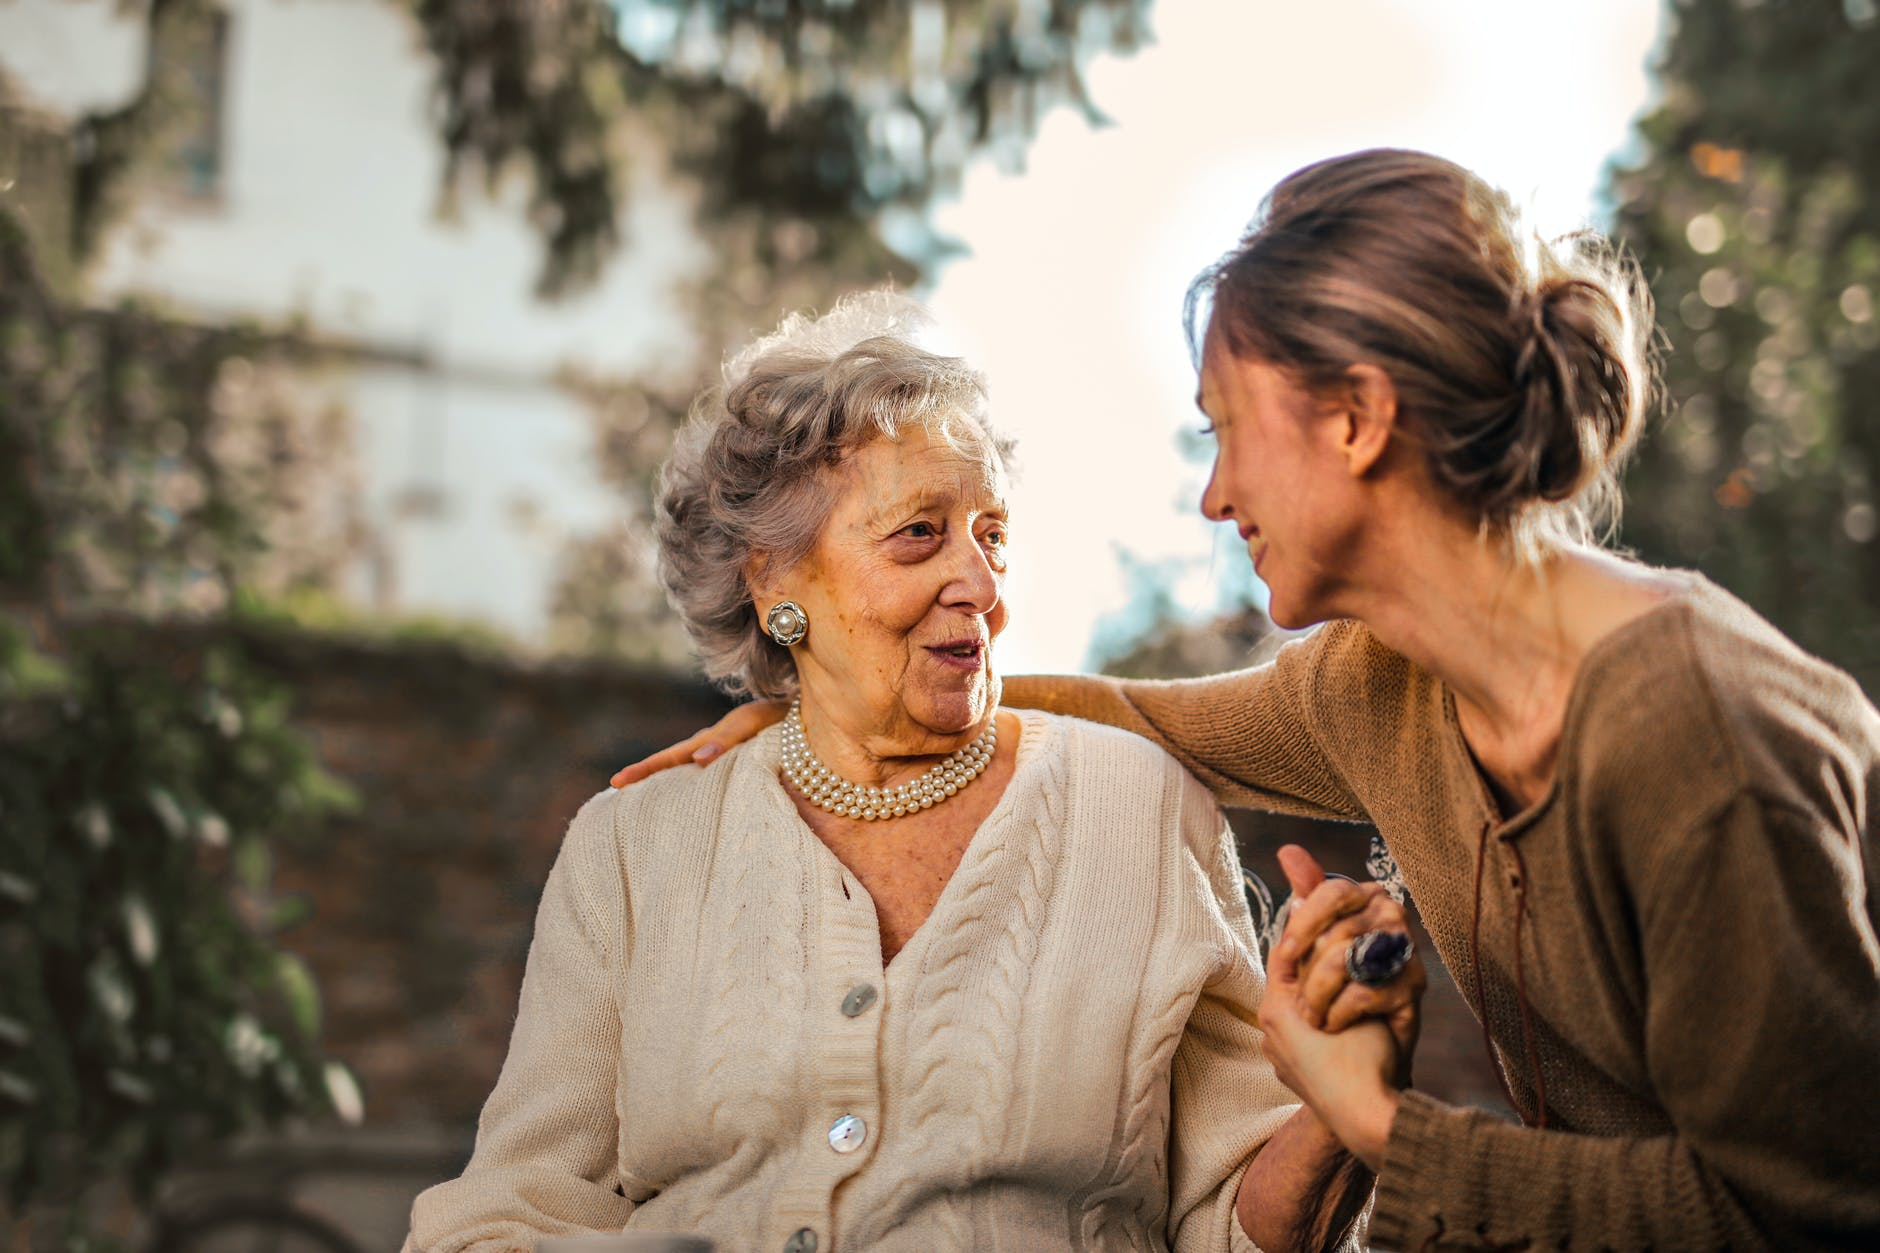 Women's Sexual Health: Age Doesn't Matter